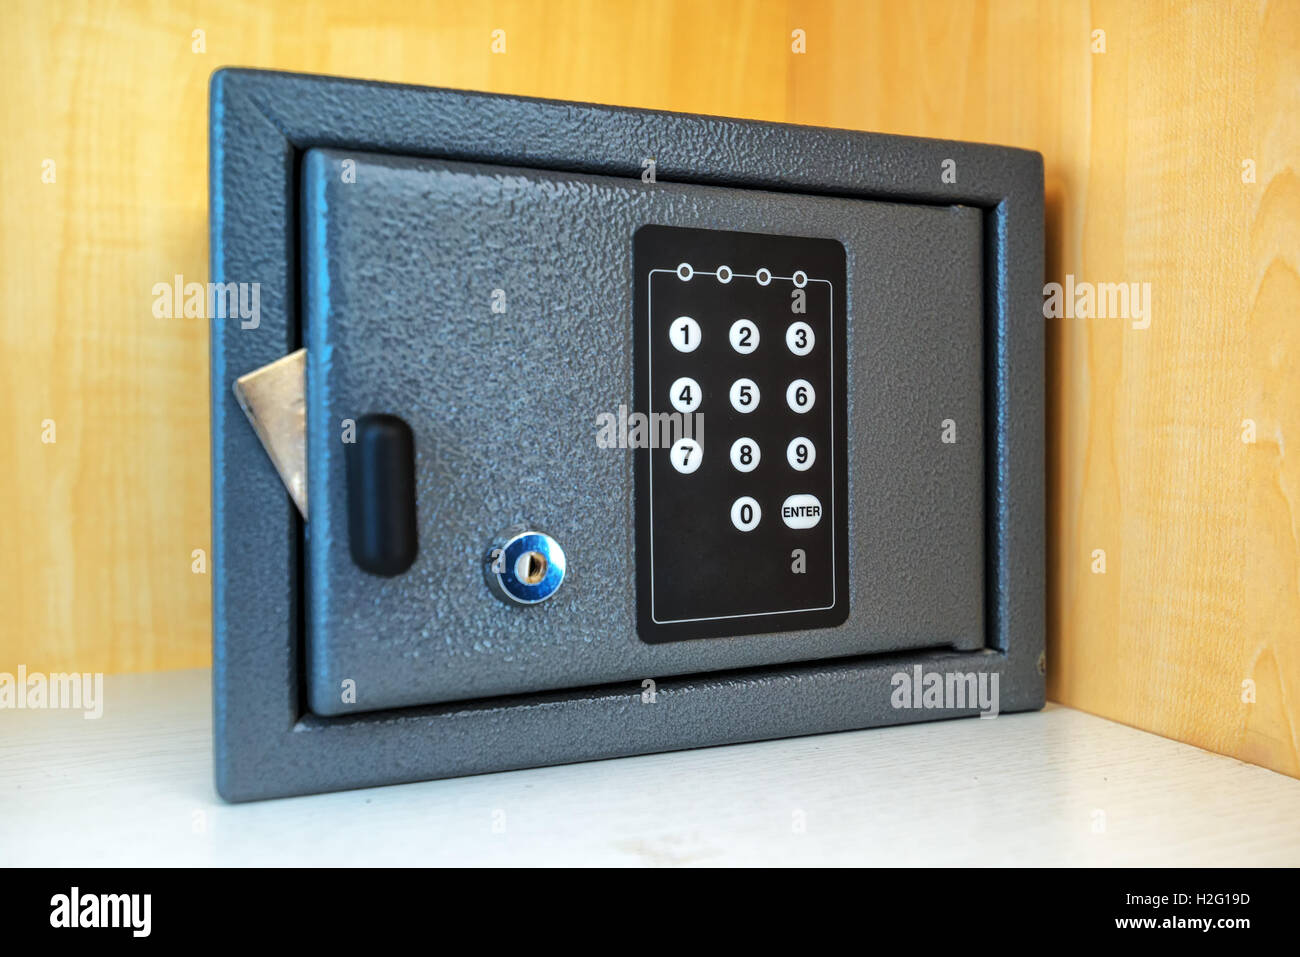 Hotel room safety deposit box with electronic PIN lock code Stock